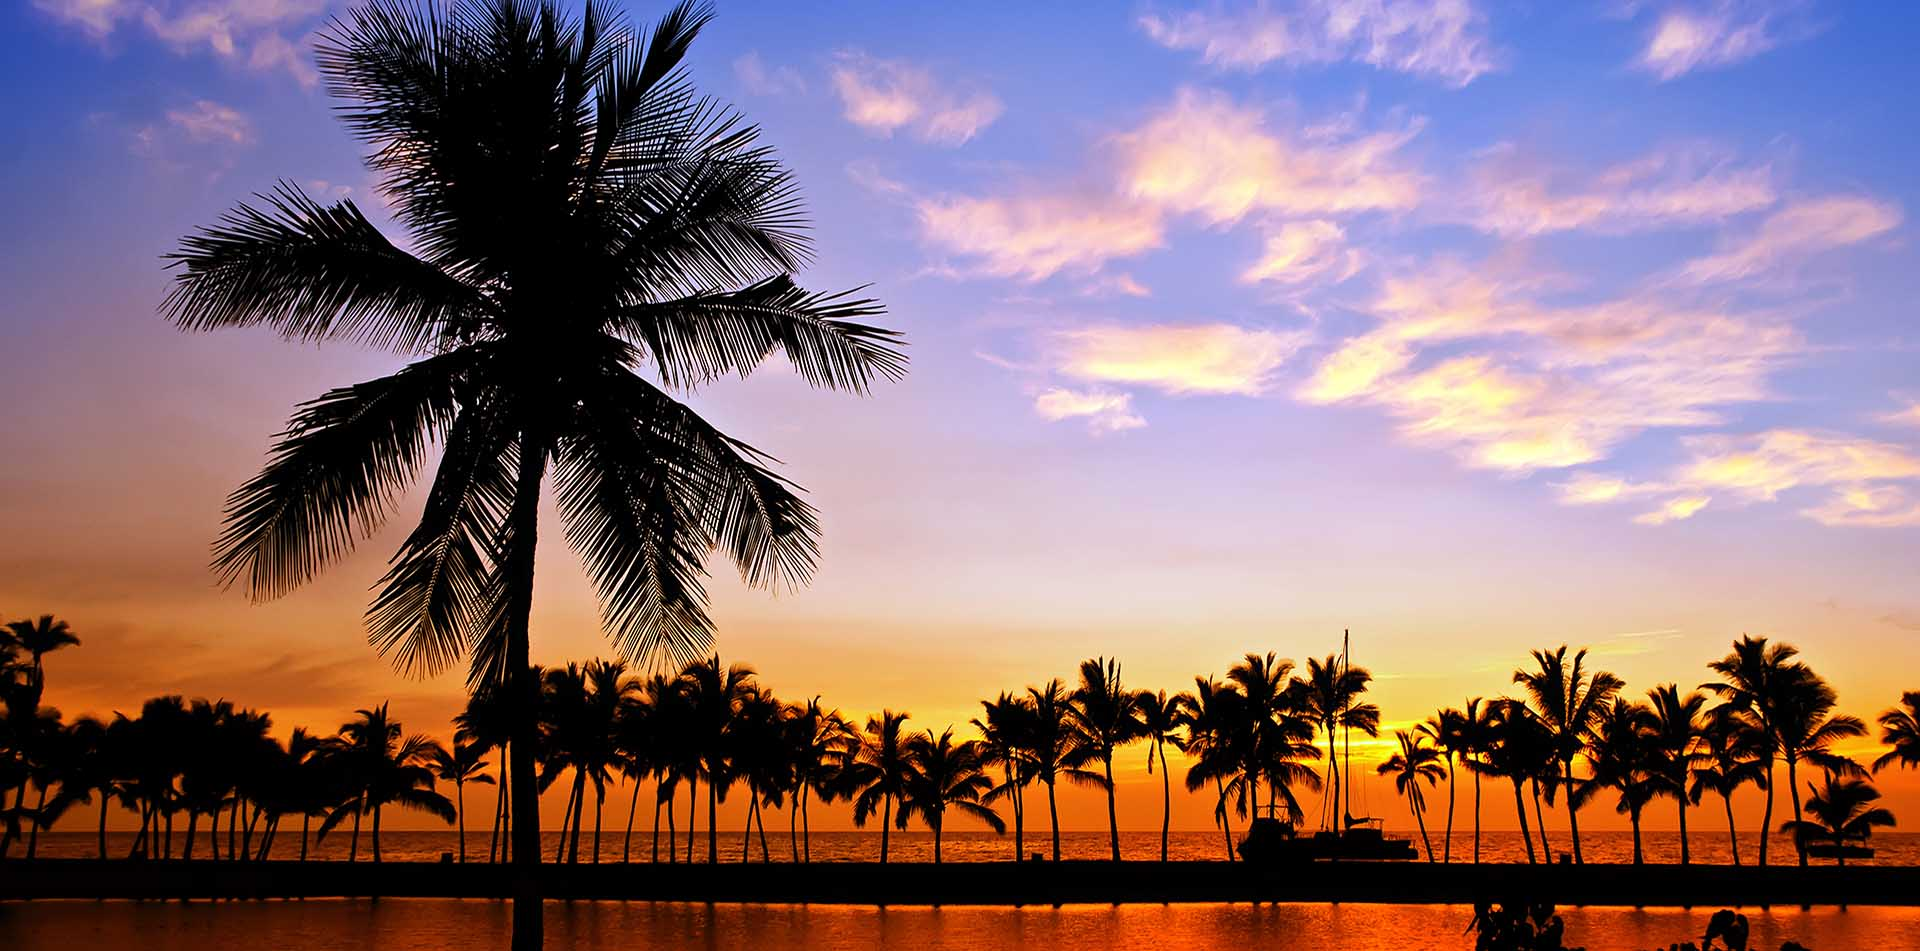 North America United States Hawaii beautiful Anaehoomalu Bay orange sunset palm trees tropical - luxury vacation destinations